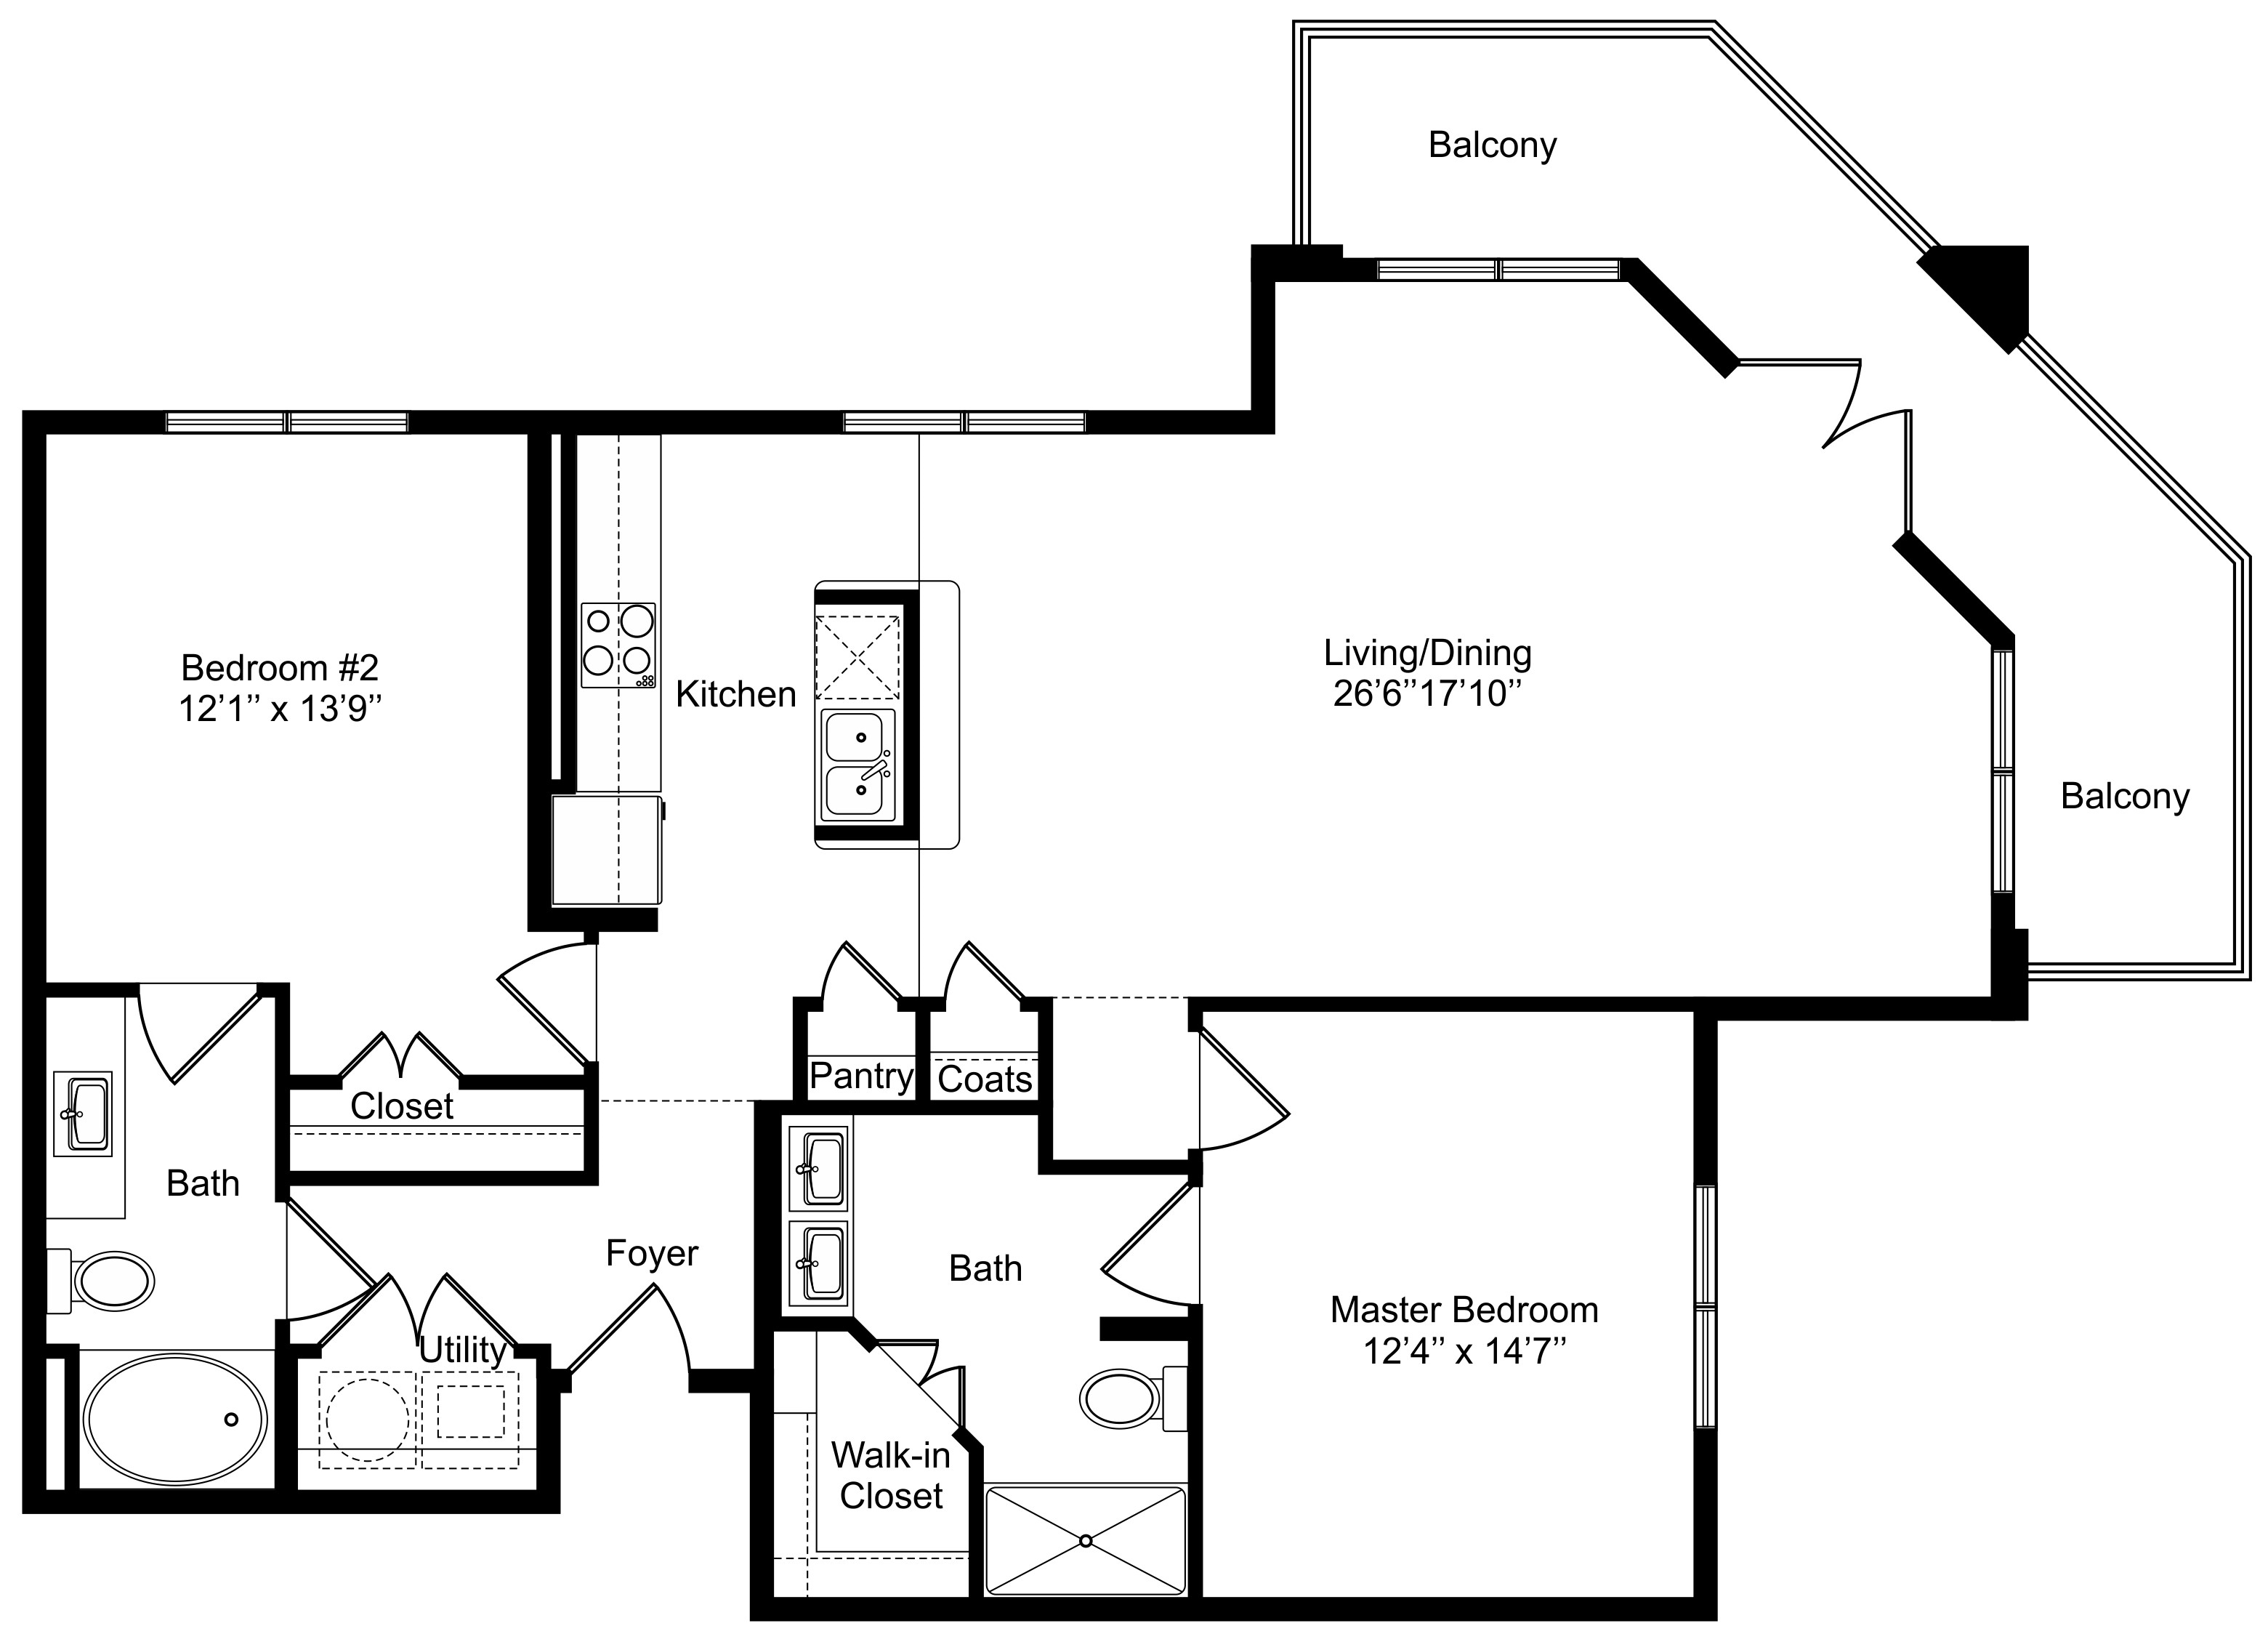 Floorplan - B2 - Retail image